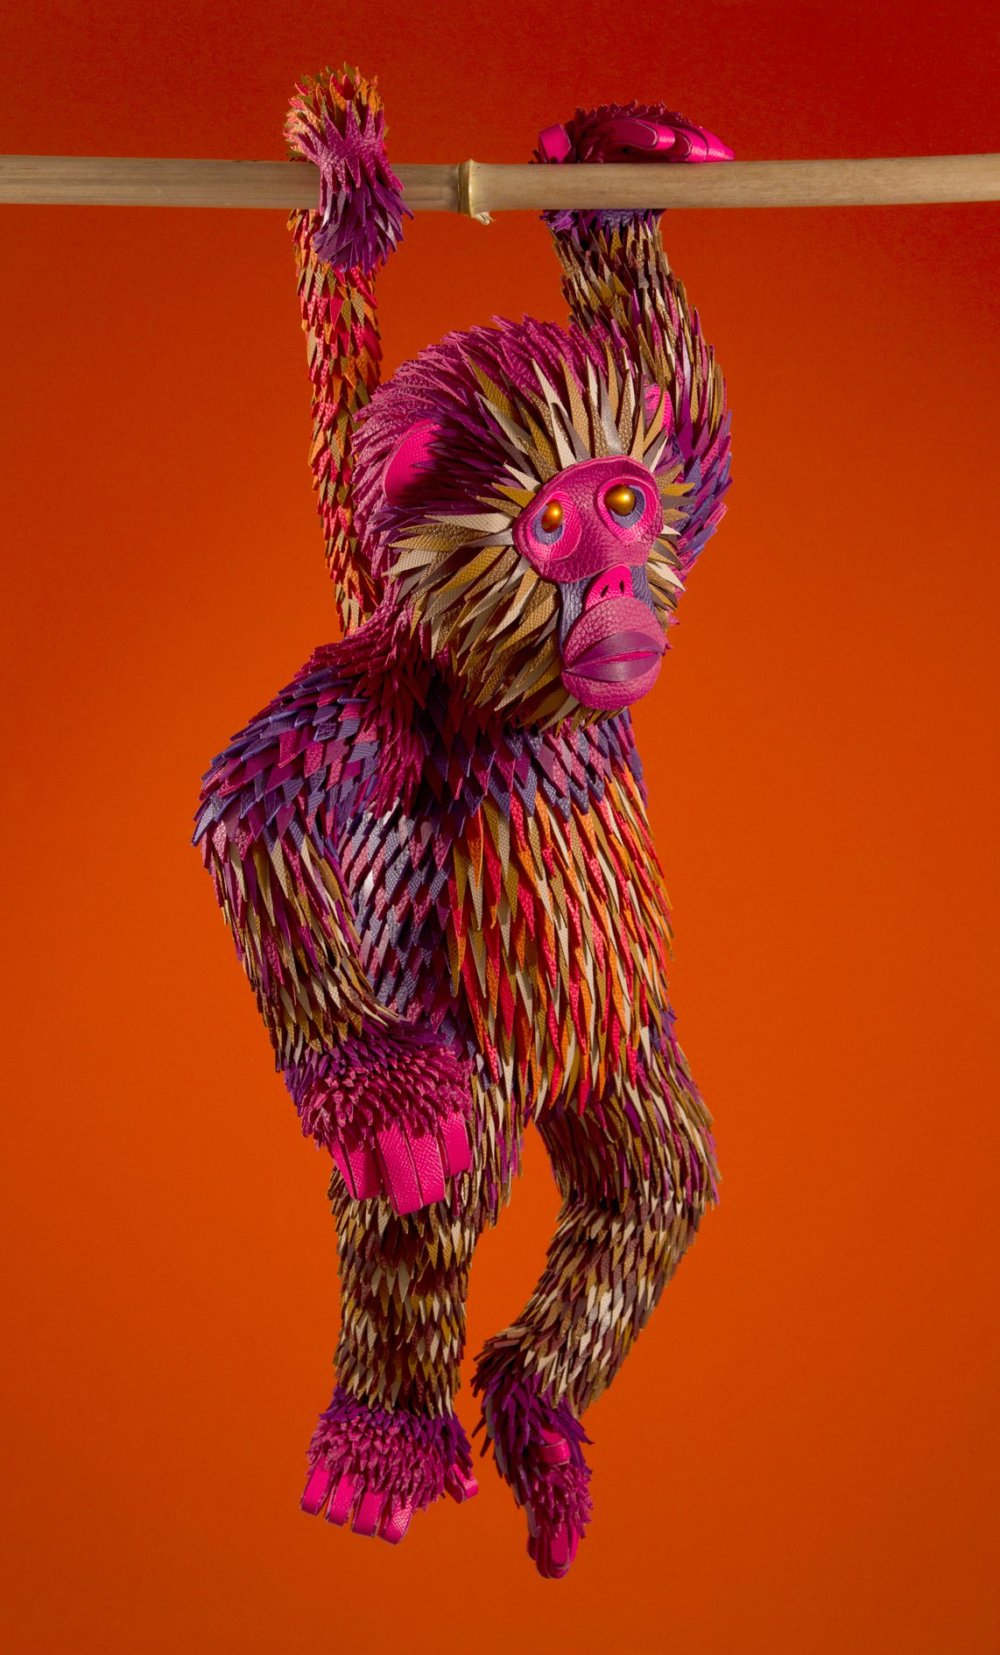 Colorful Sculptures Of Wild Animals Made From Leftover Pieces Of Leather By Lucie Thomas And Thibault Zimmermann 1